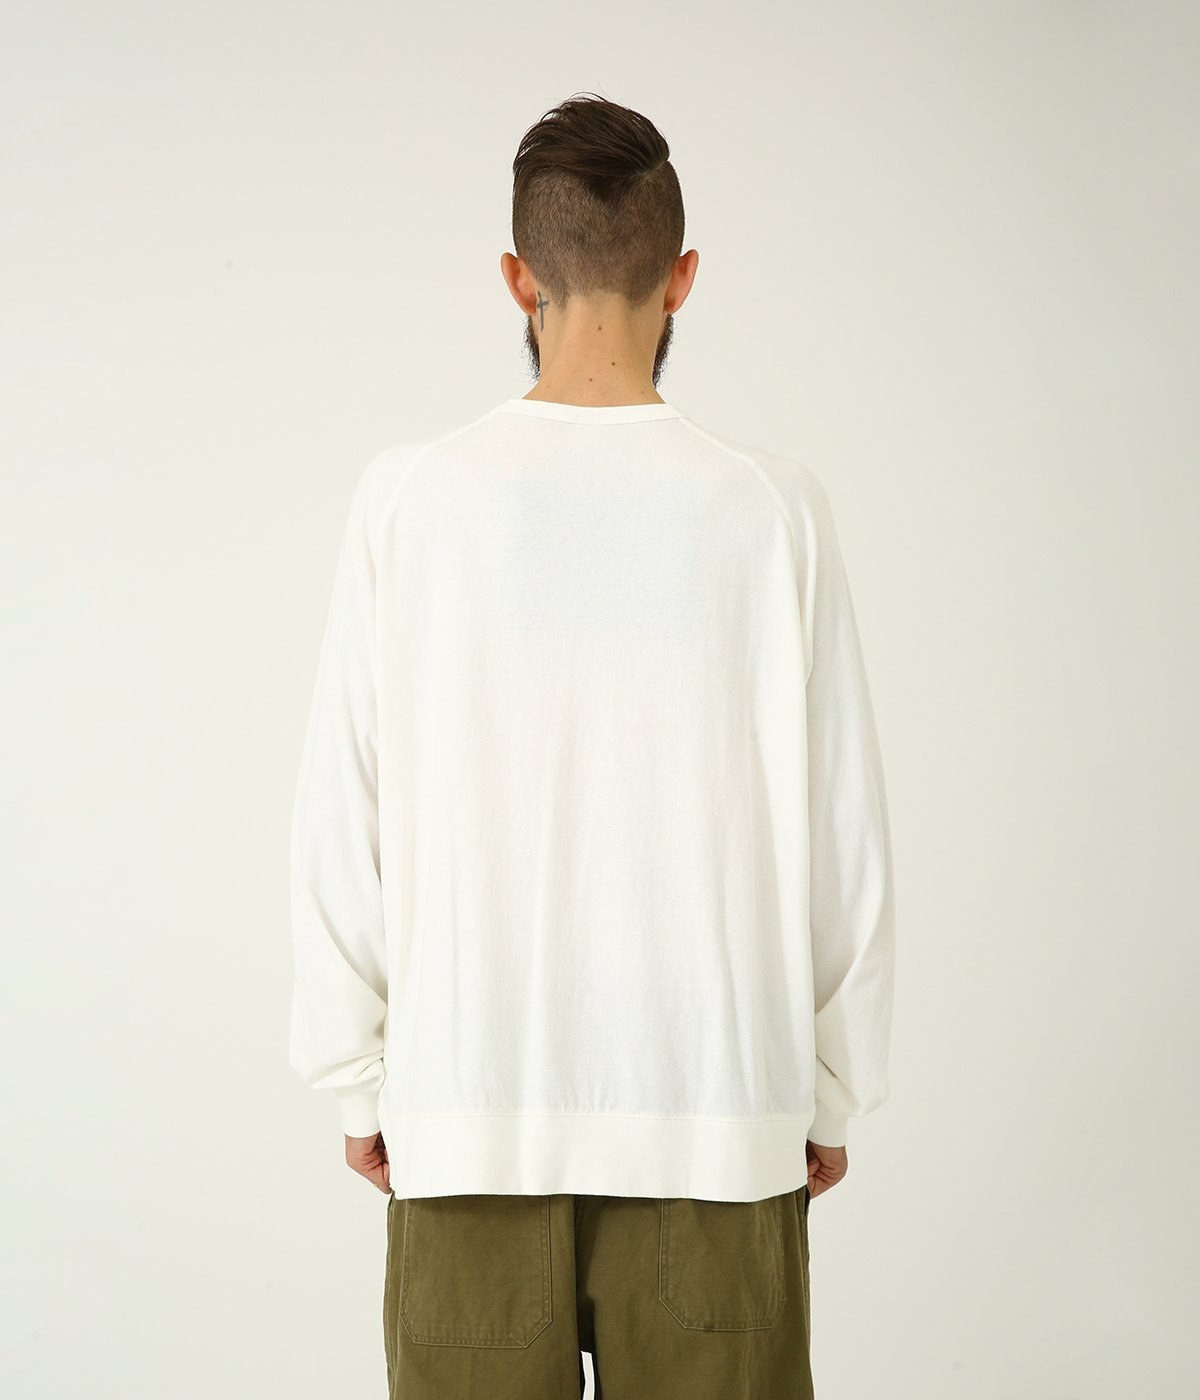 16/- COTTON PEACH BRUSHED RAGLAN L/S T-SHIRT